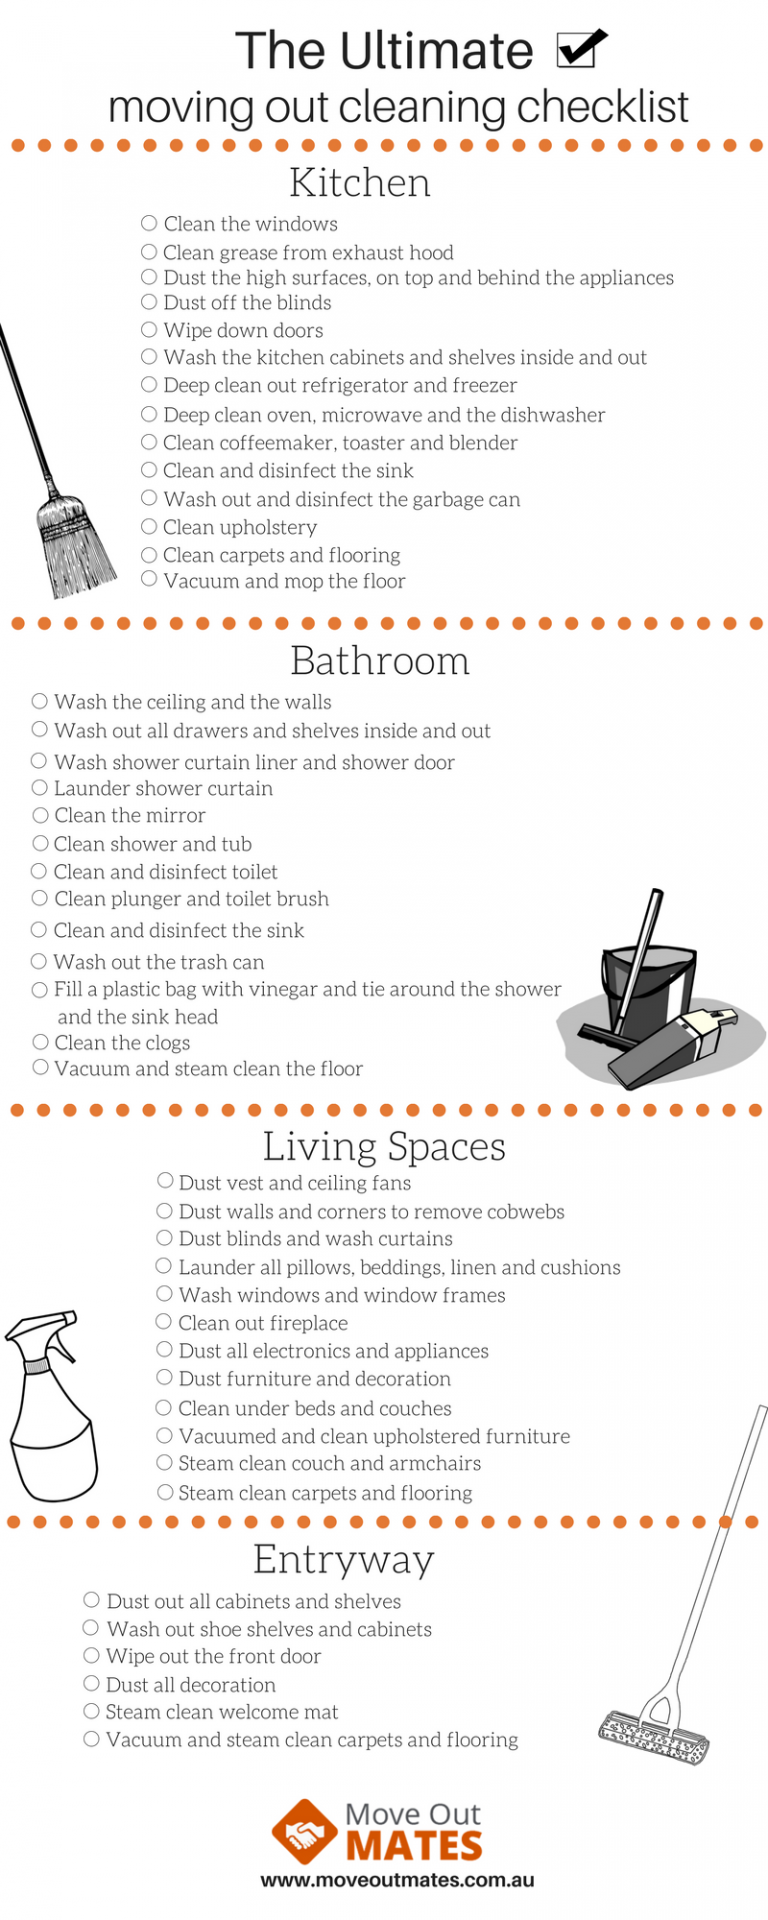 Moving Out Checklist End Of Lease Cleaning Checklist Moving Out Checklist Move Out Cleaning House Cleaning Checklist